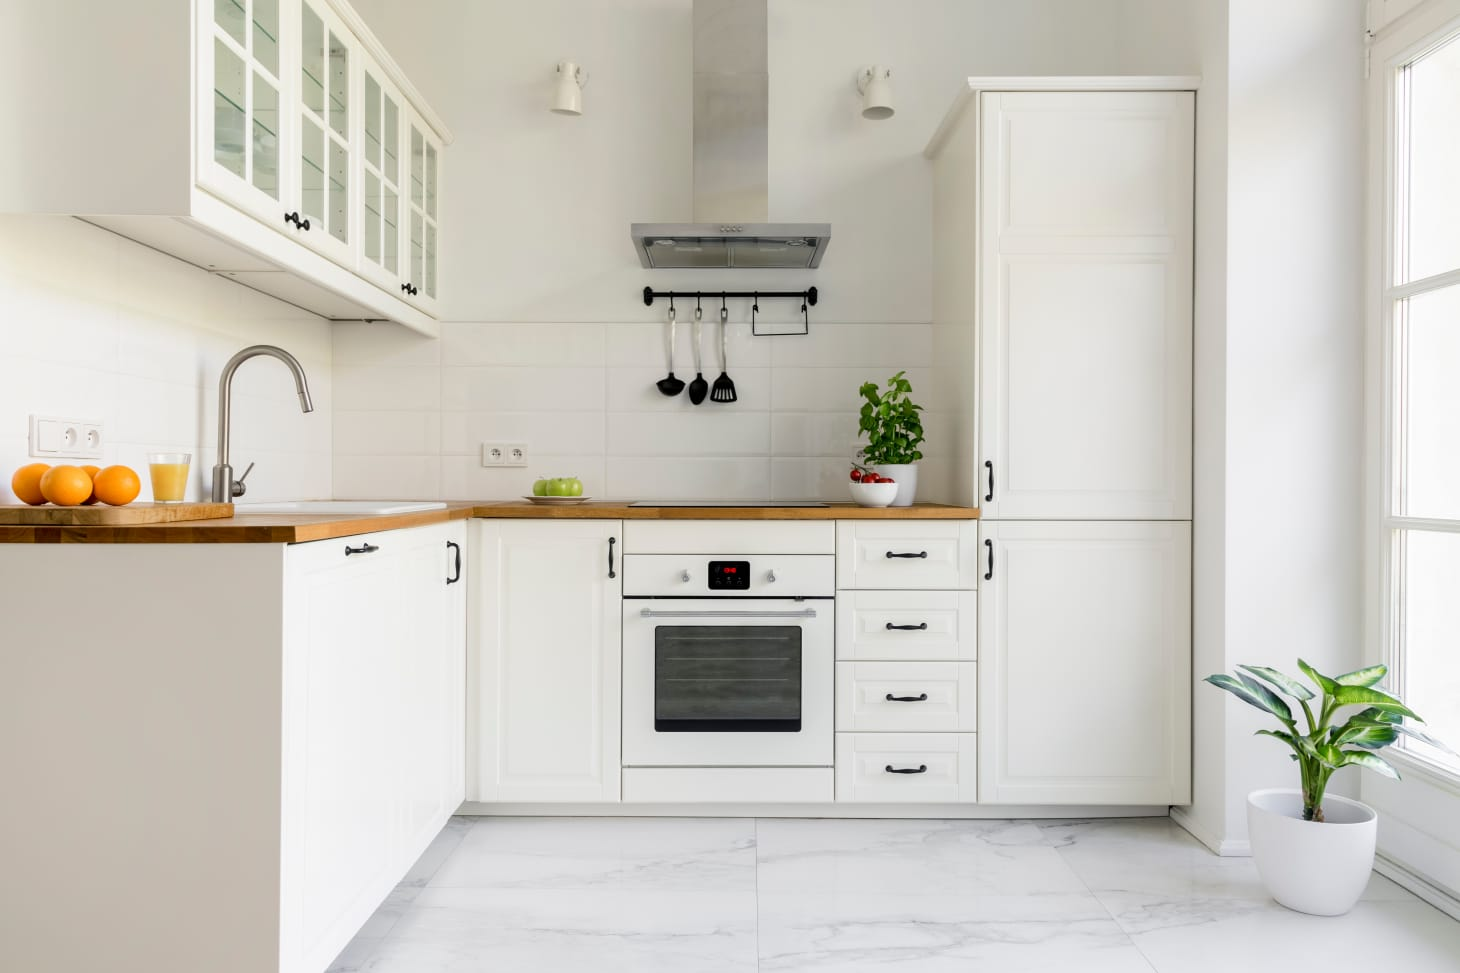 Home decorating trends to avoid 2010 kitchn - Decorating trends to avoid ...